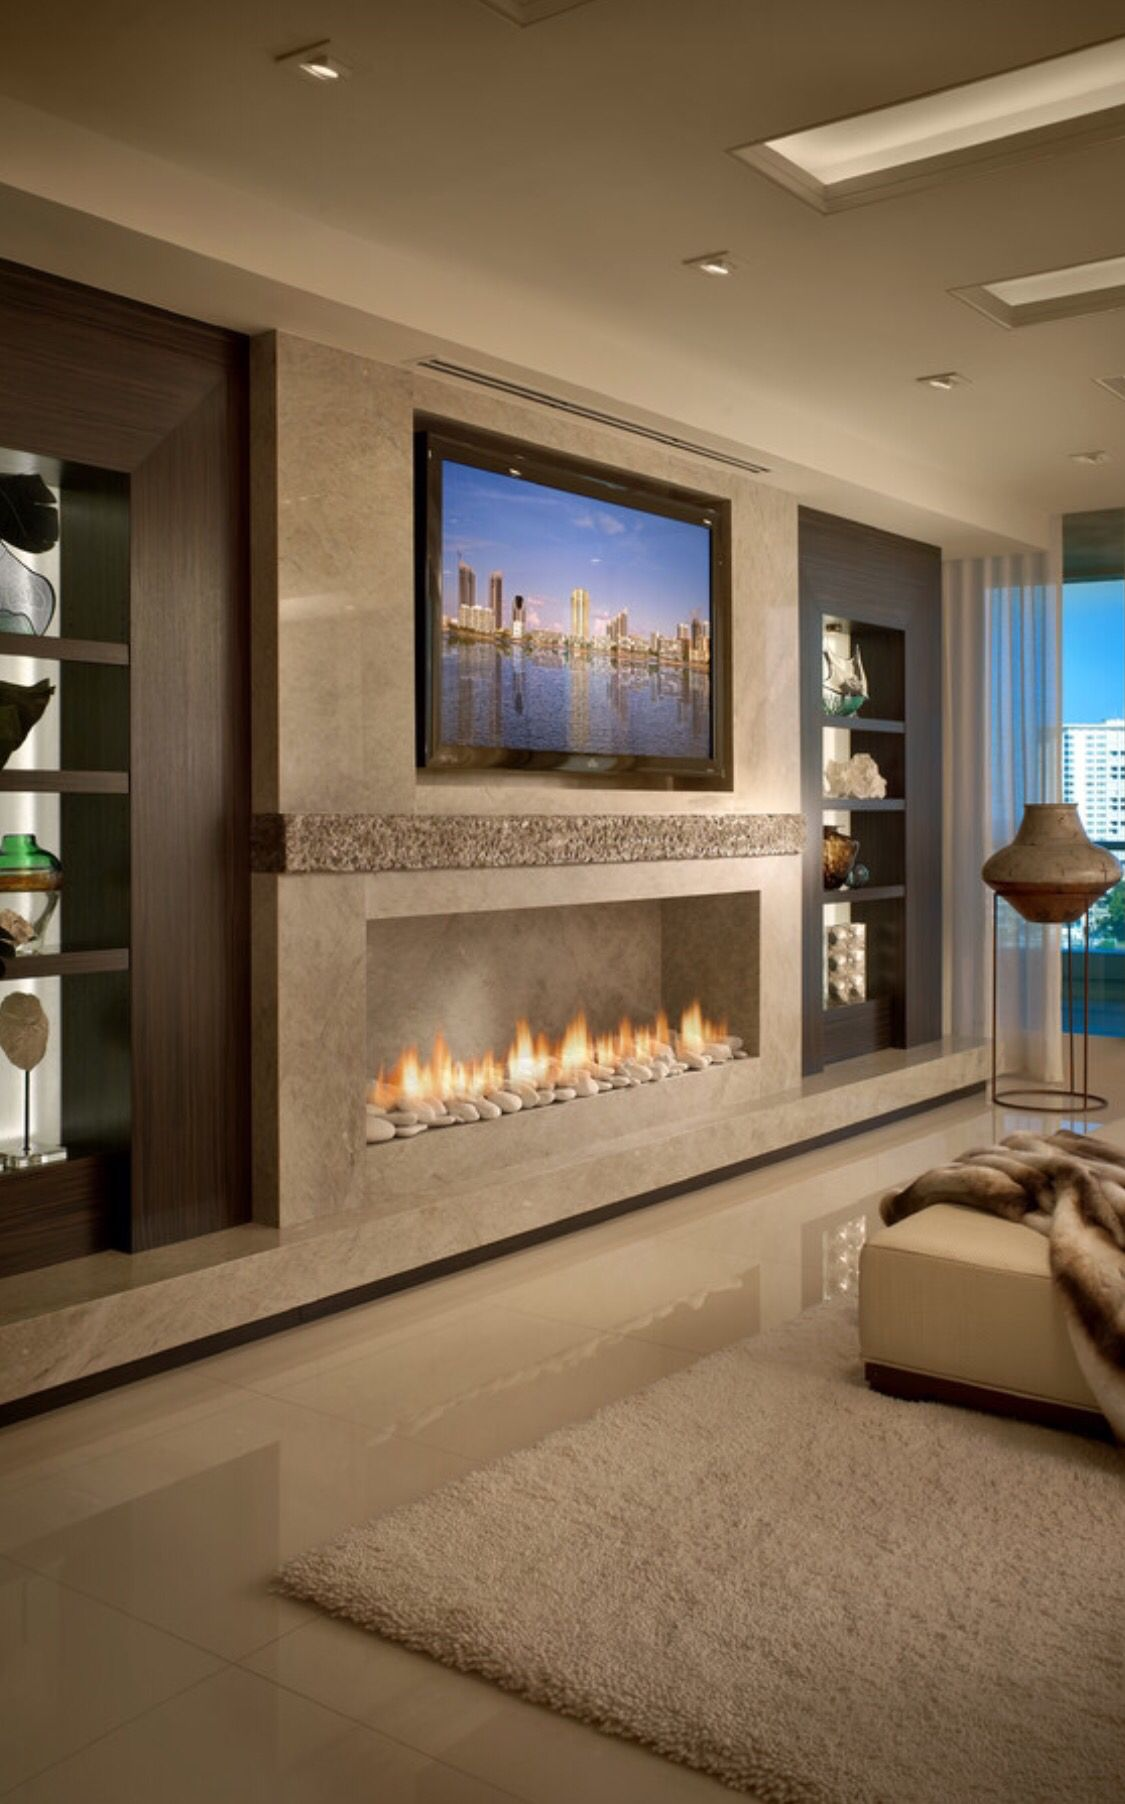 Great Fireplace Luxurious Bedrooms Living Room Designs